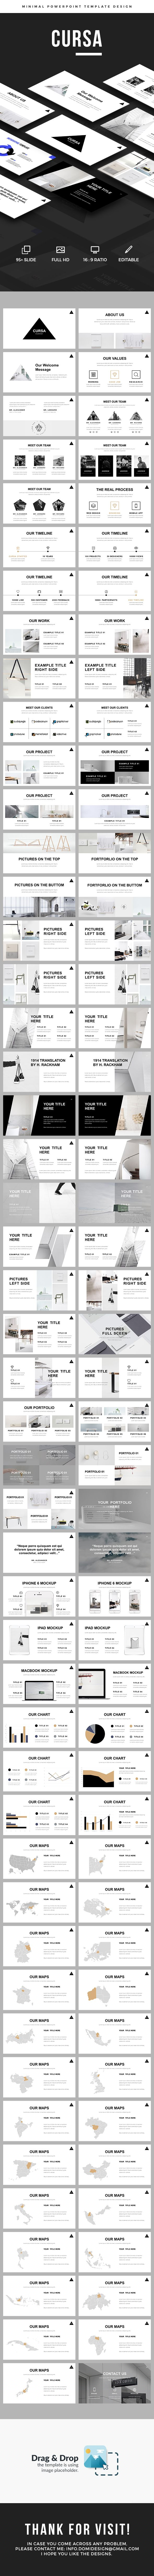 Cursa - Minimal    Powerpoint Template • Download ➝ https://graphicriver.net/item/cursa-minimal-powerpoint-template/17095665?ref=pxcr